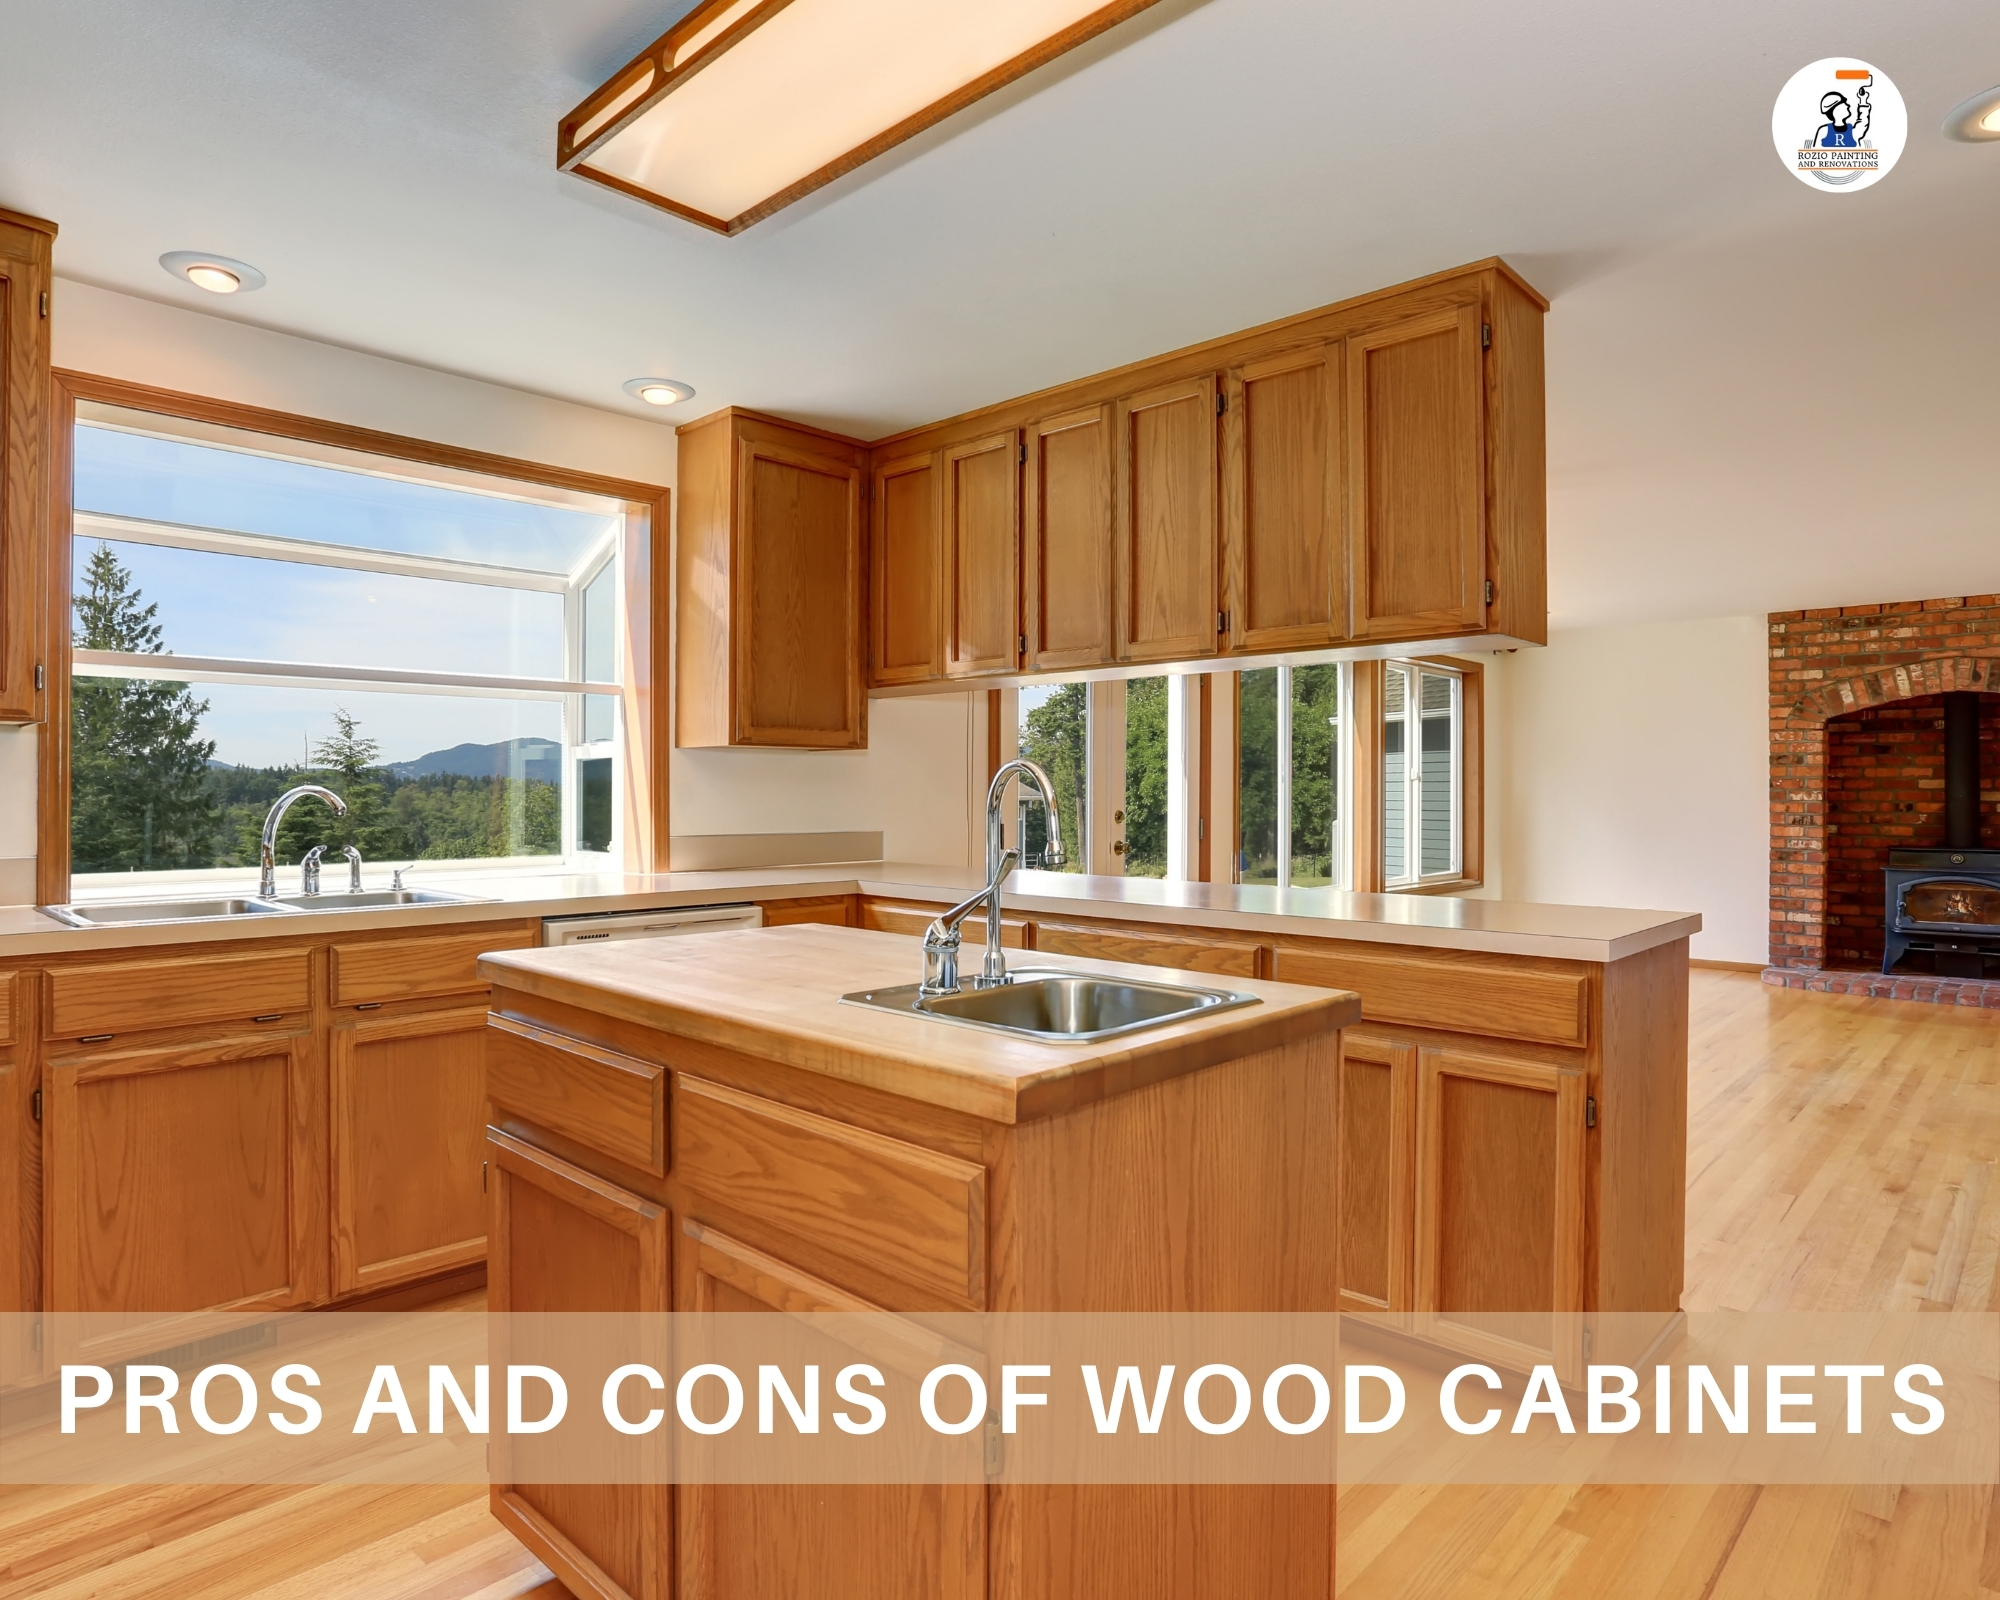 Pros and Cons of Wood Cabinets